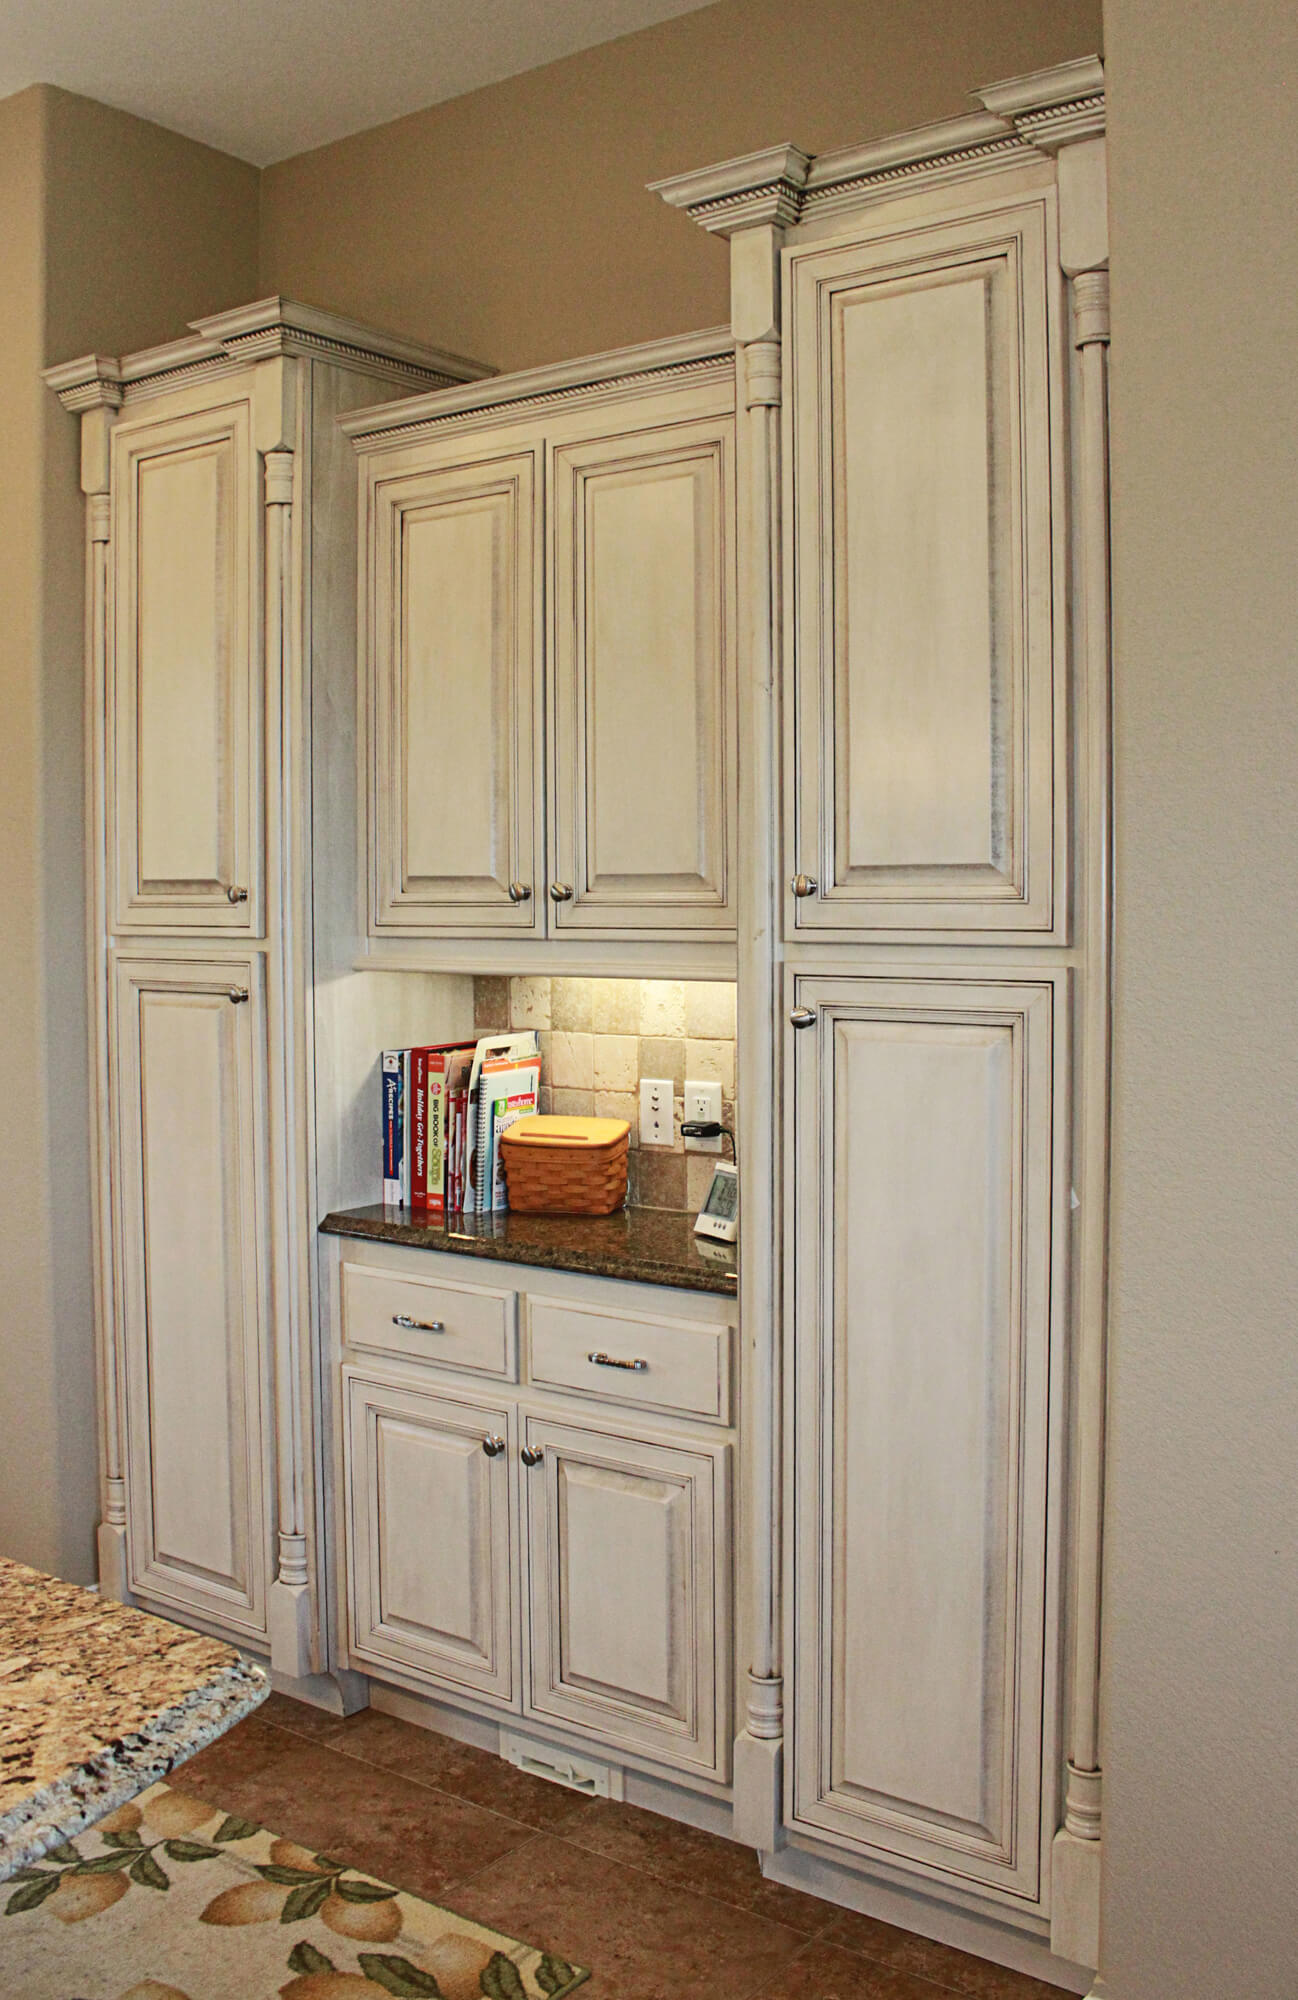 pictures of custom kitchen cabinets cabniets the plus | painted